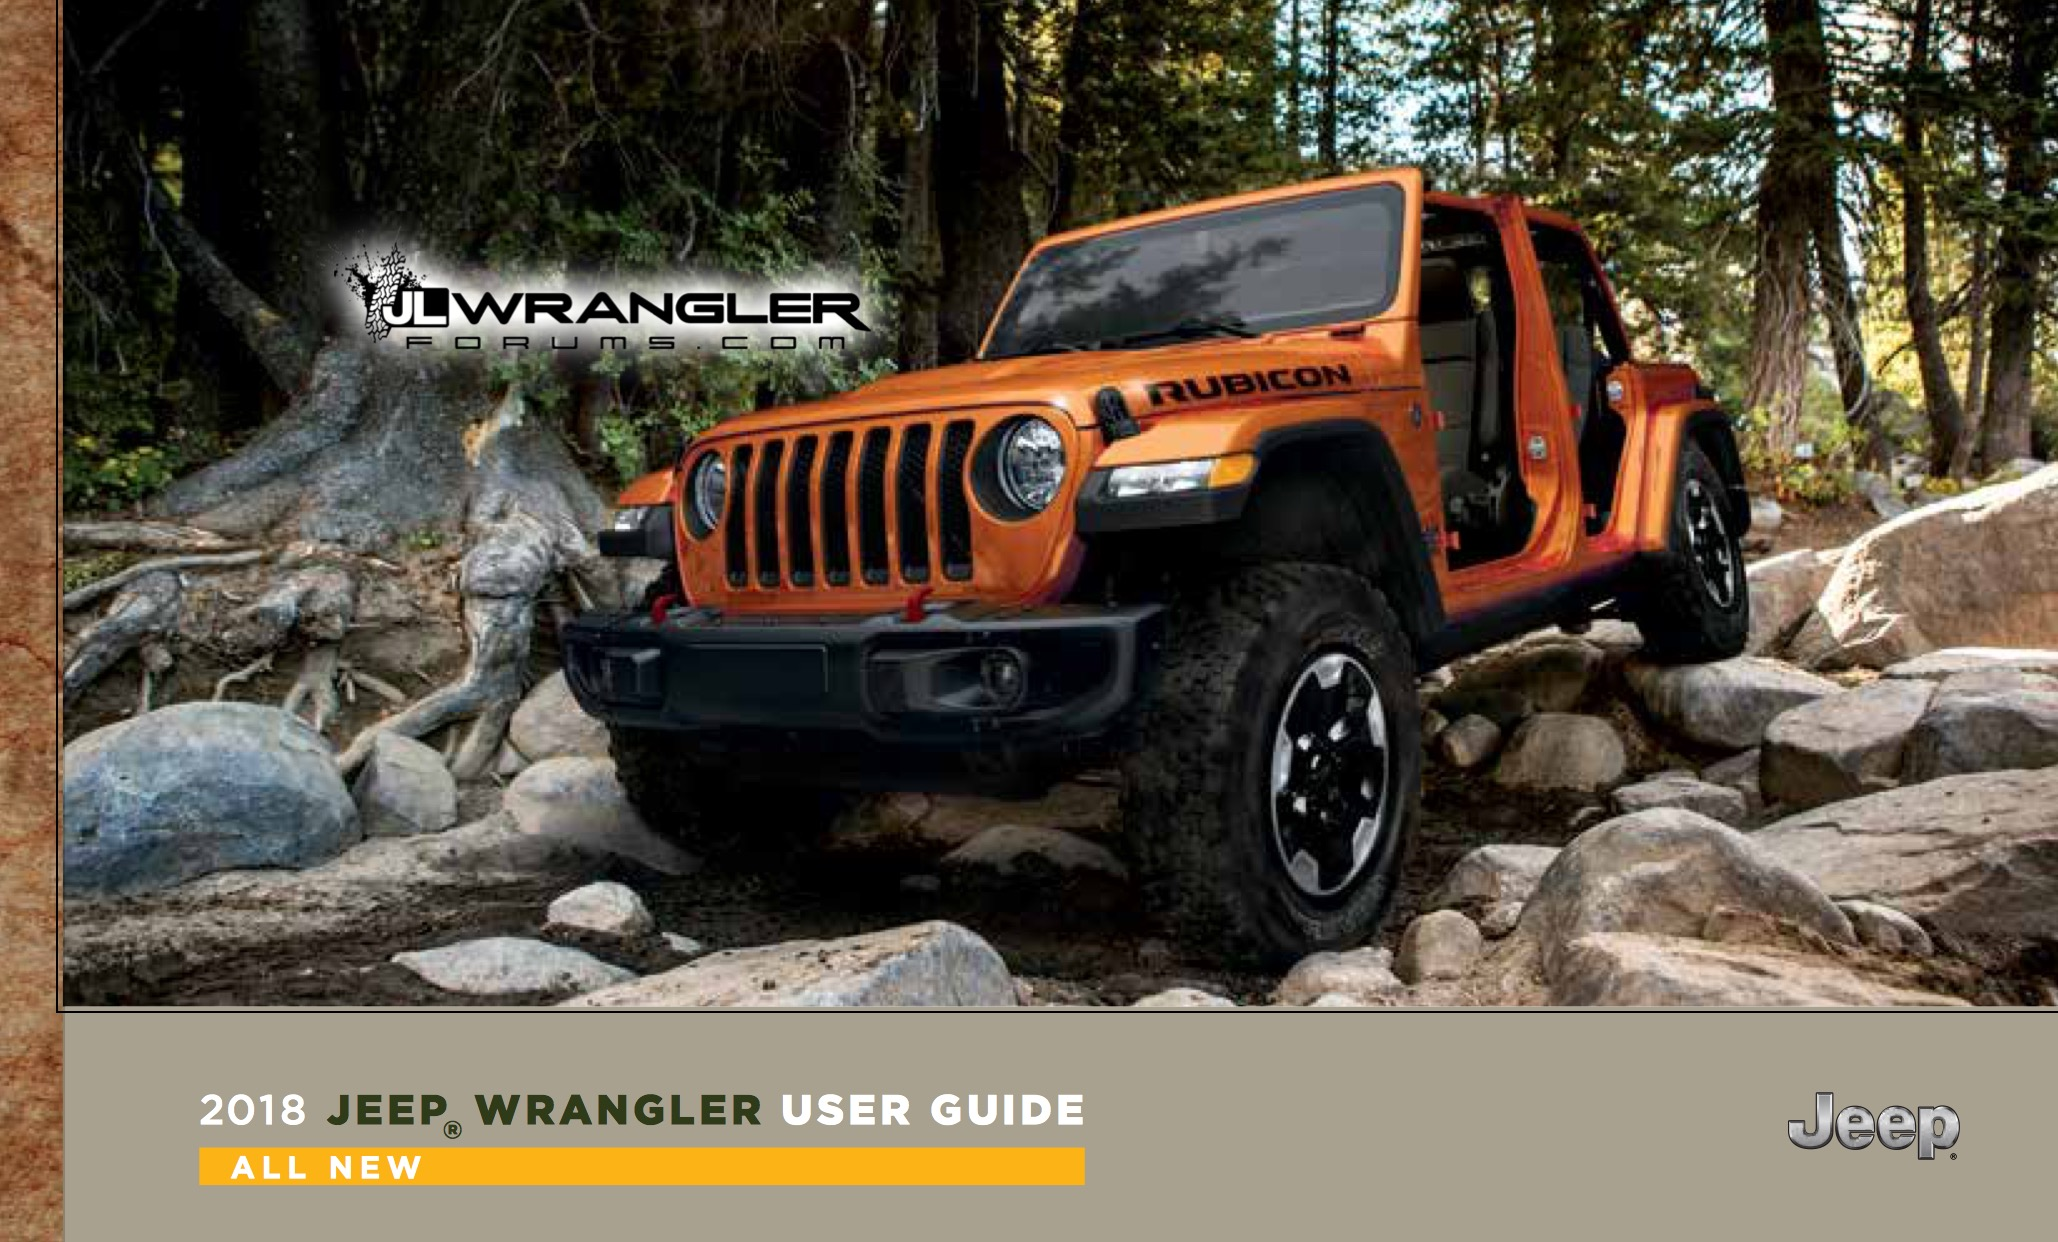 Leaked: 2018 Jeep Wrangler JL Owner's Manual & User Guide! – 2018+ Jeep  Wrangler (JL) Forums – New Jeep Wrangler (JL / JT) News and Forum ...